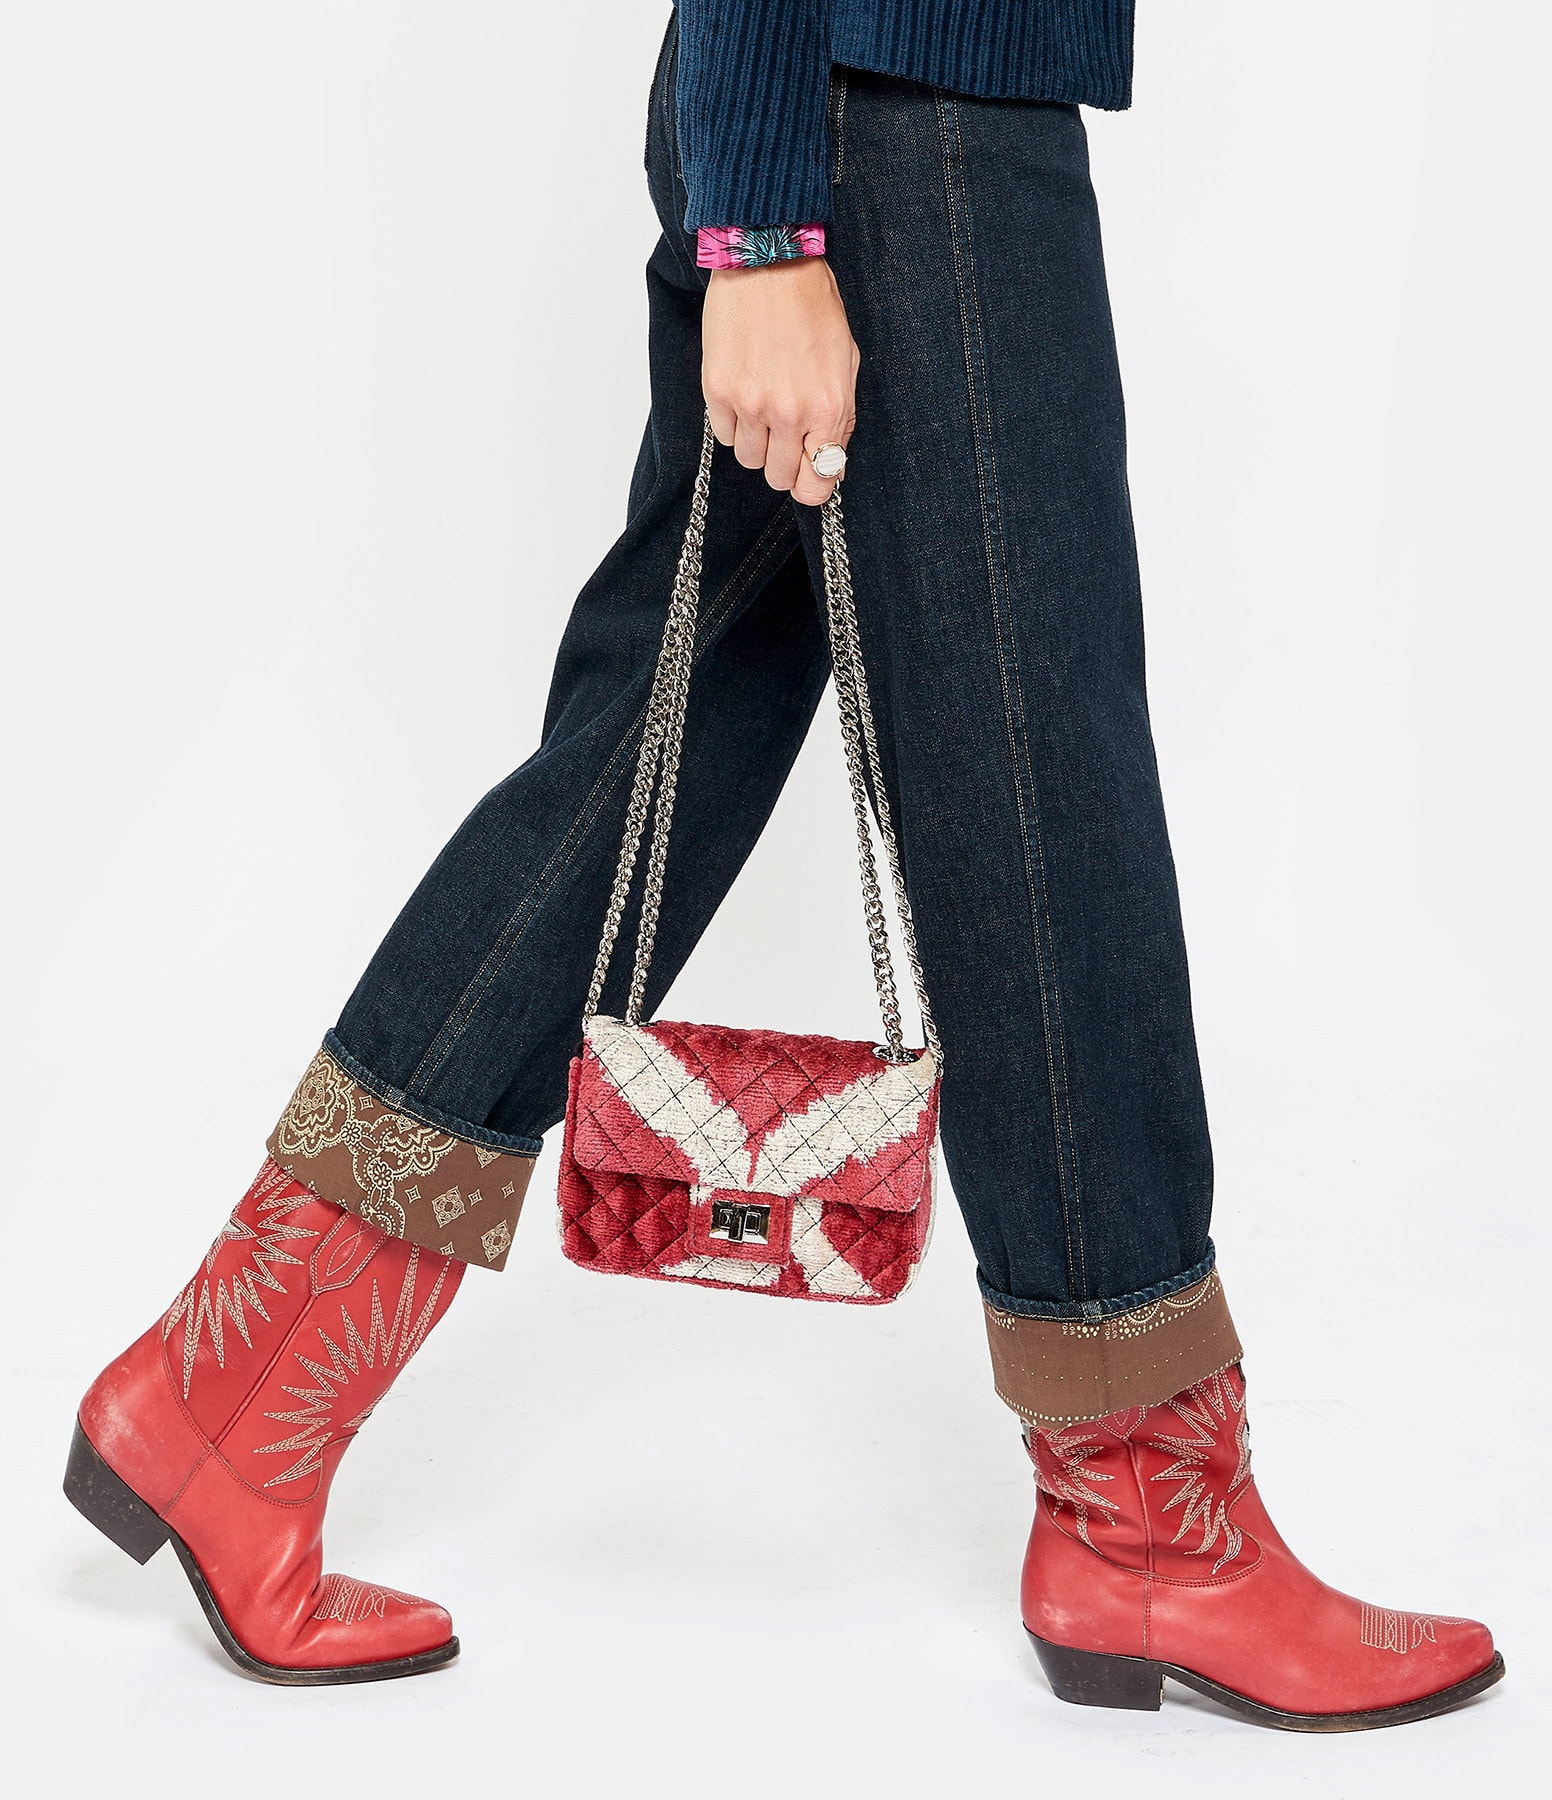 ROUGH STUDIOS - Sac Bandita Mini Velours Soie Rouge Beige